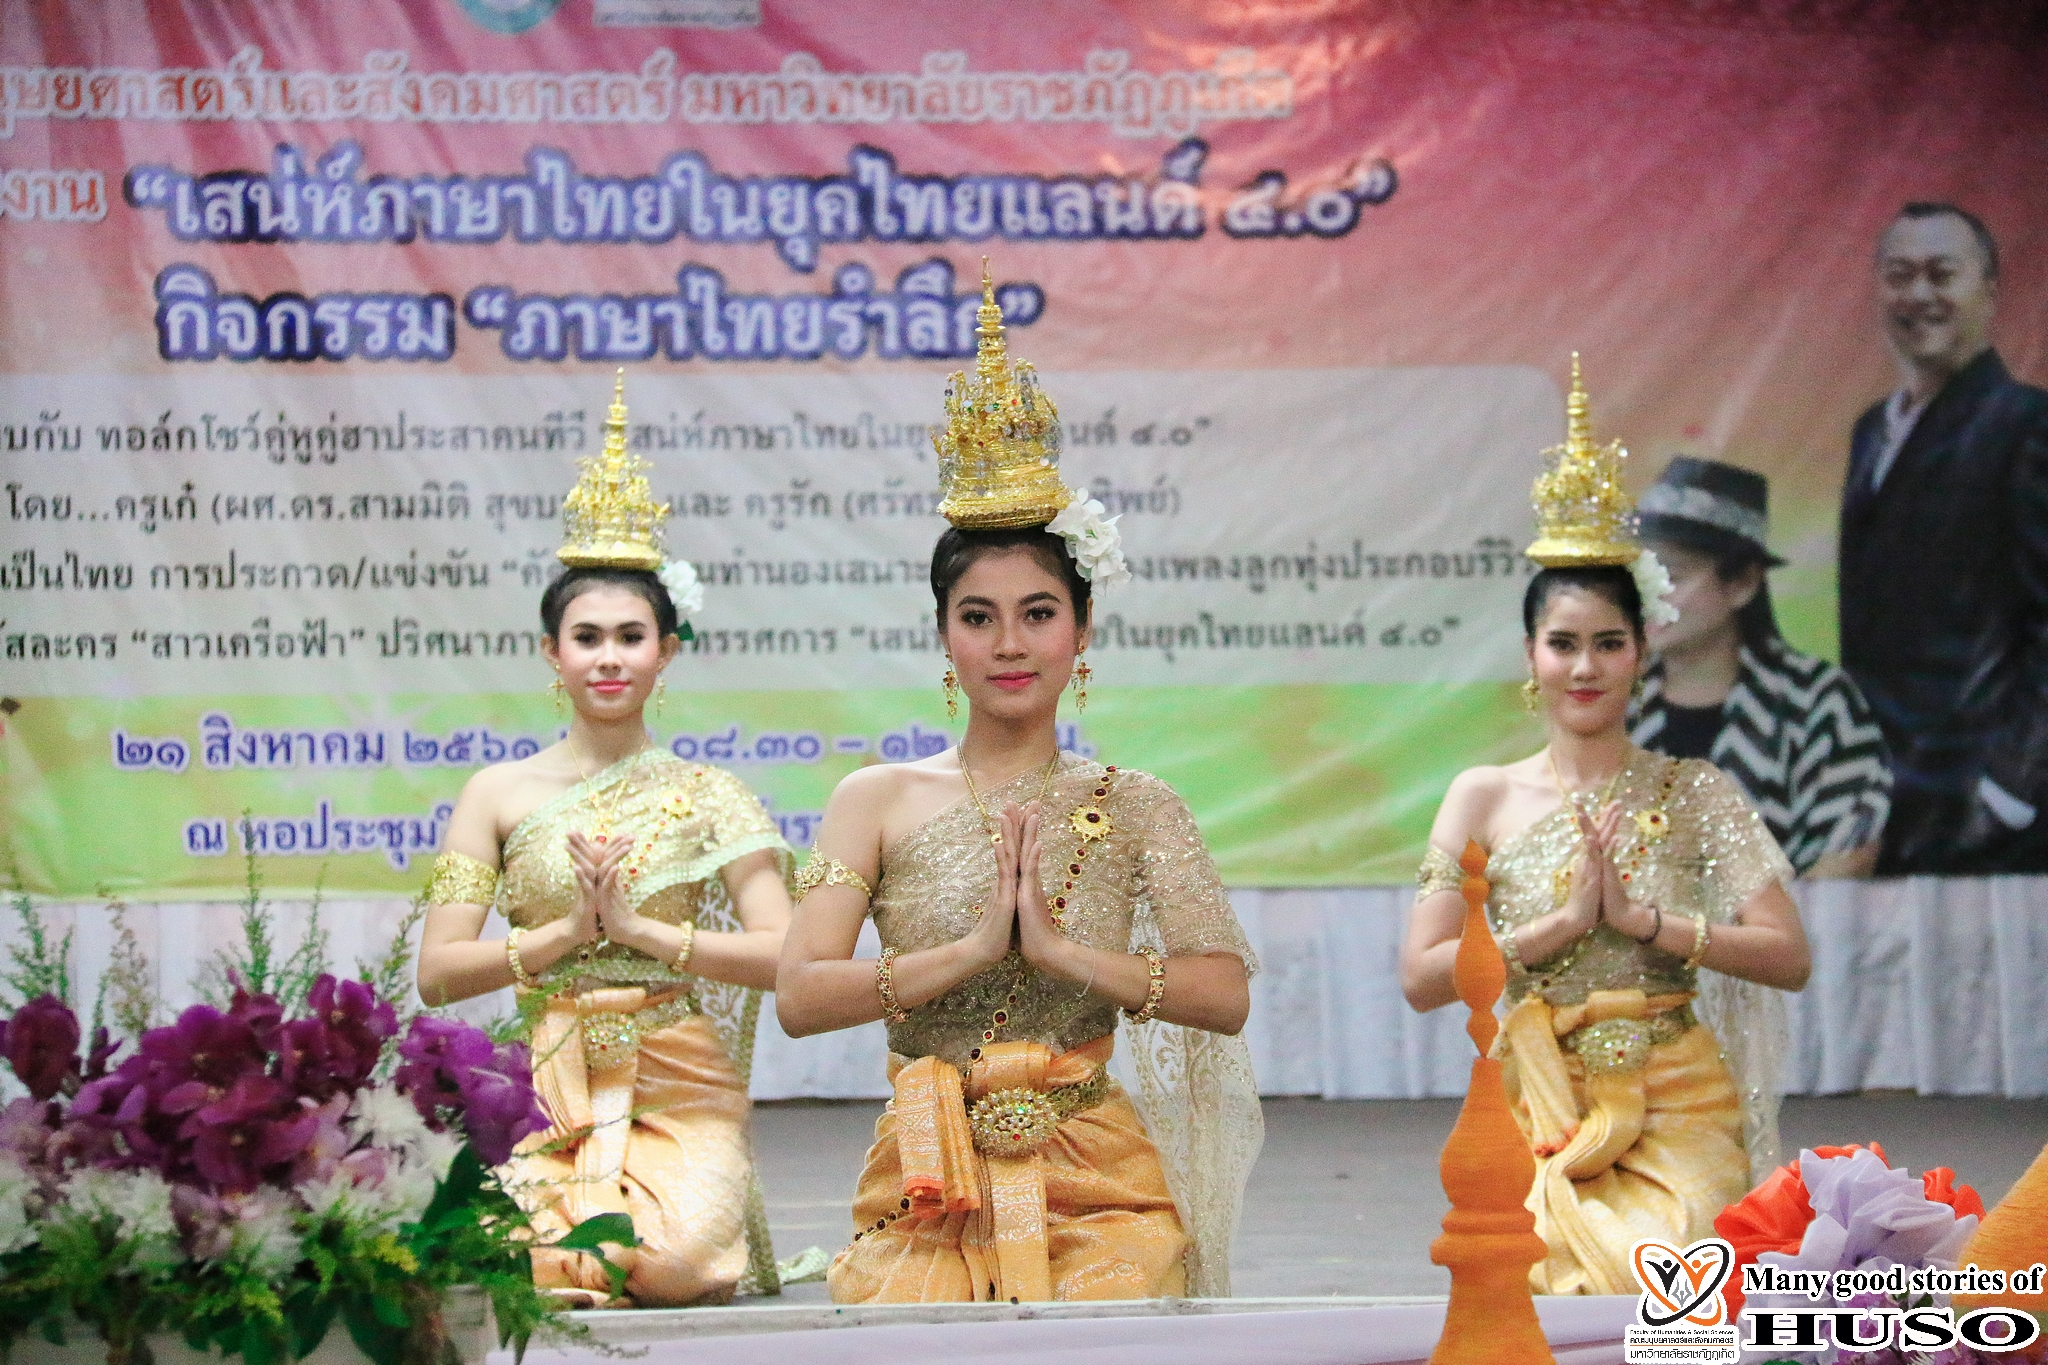 HUSO PKRU National Thai Language Day 21 Aug 2018 16